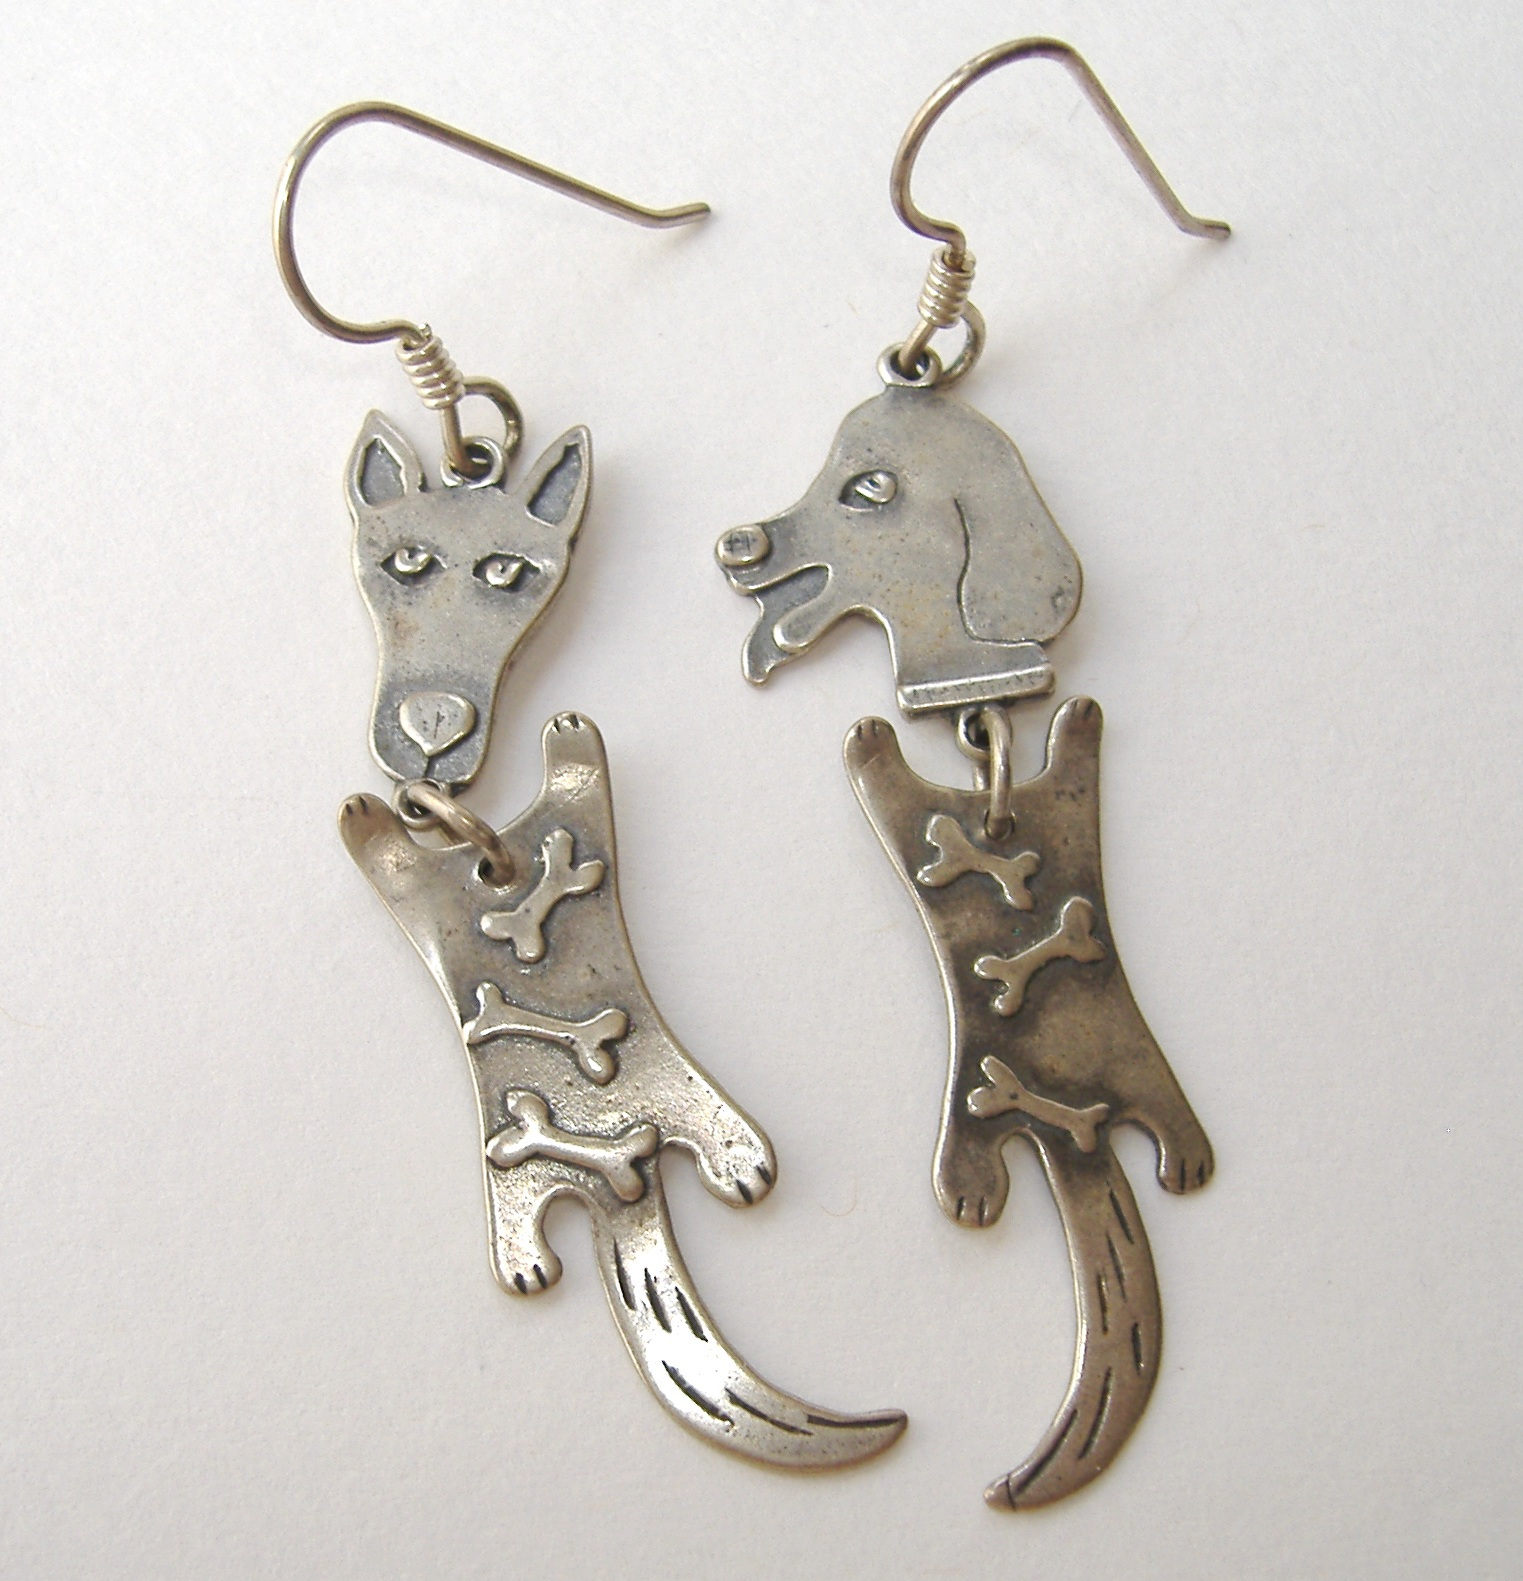 Metal Puppy Dog Earrings Handmade Creative Sterling Silver